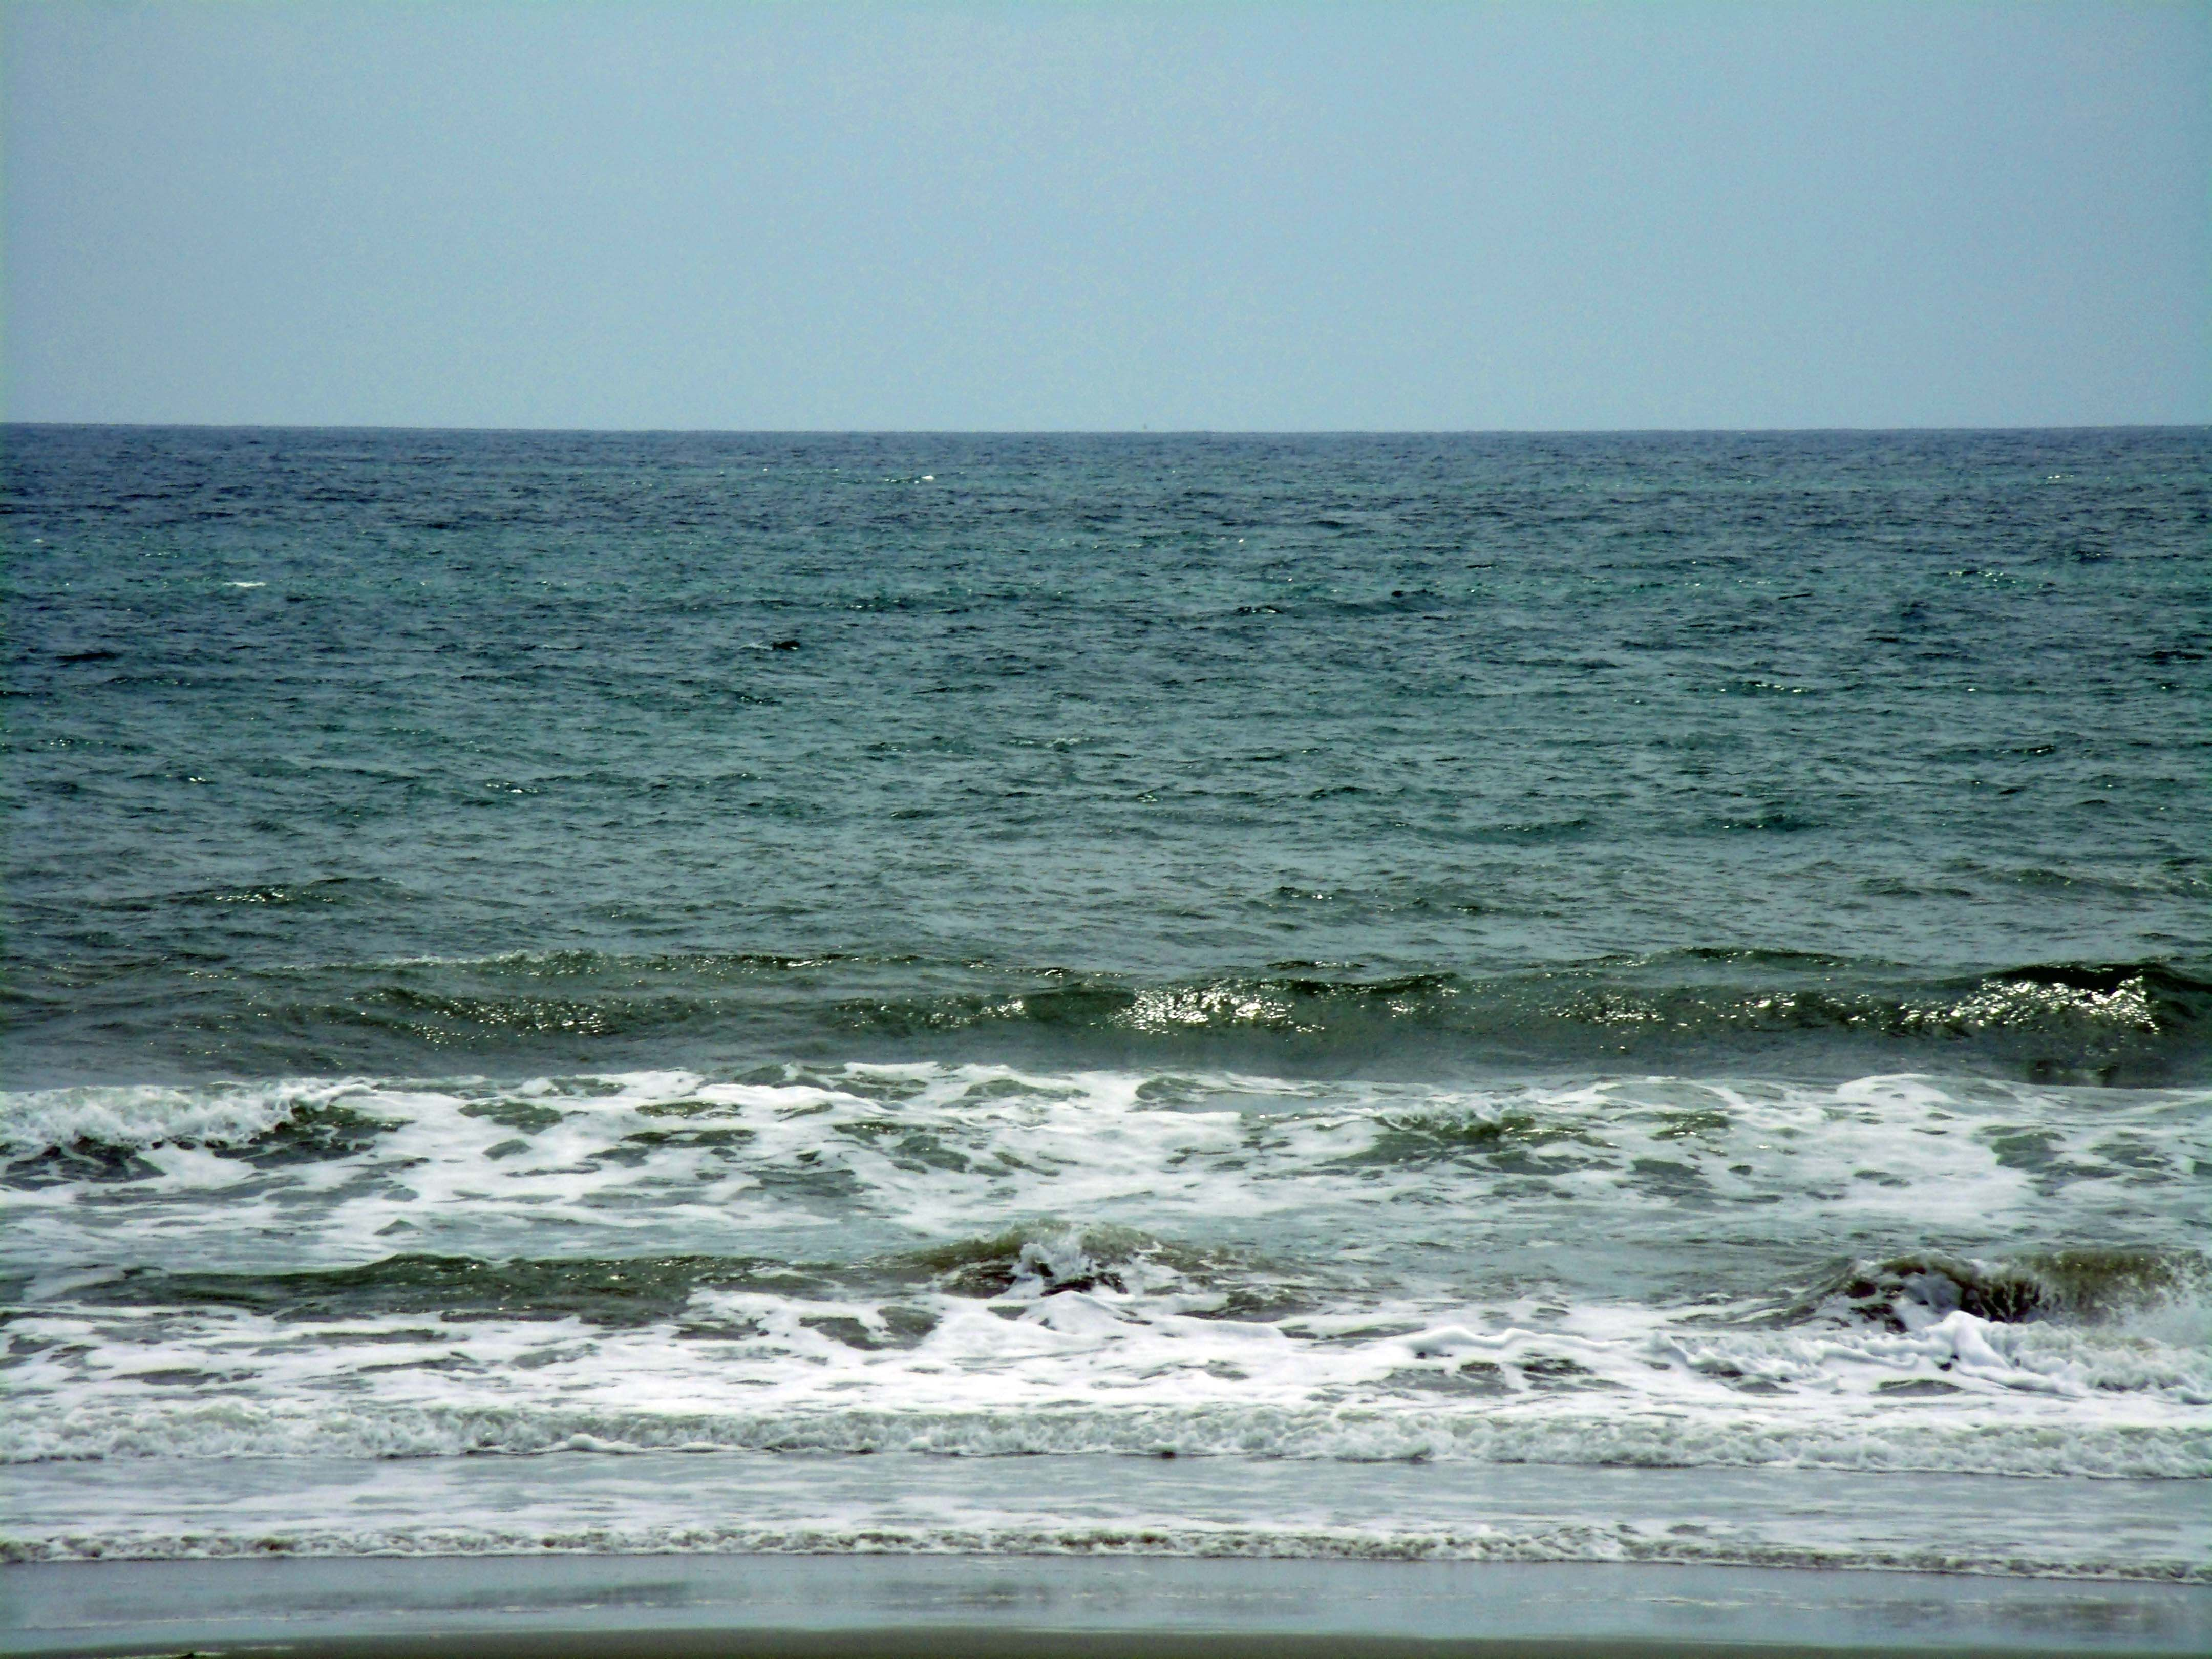 Enjoy Picturesque Views Of The Atlantic Ocean At Seaside In North Myrtle Beach South Carolina North Myrtle Beach Resorts North Myrtle Beach Myrtle Beach